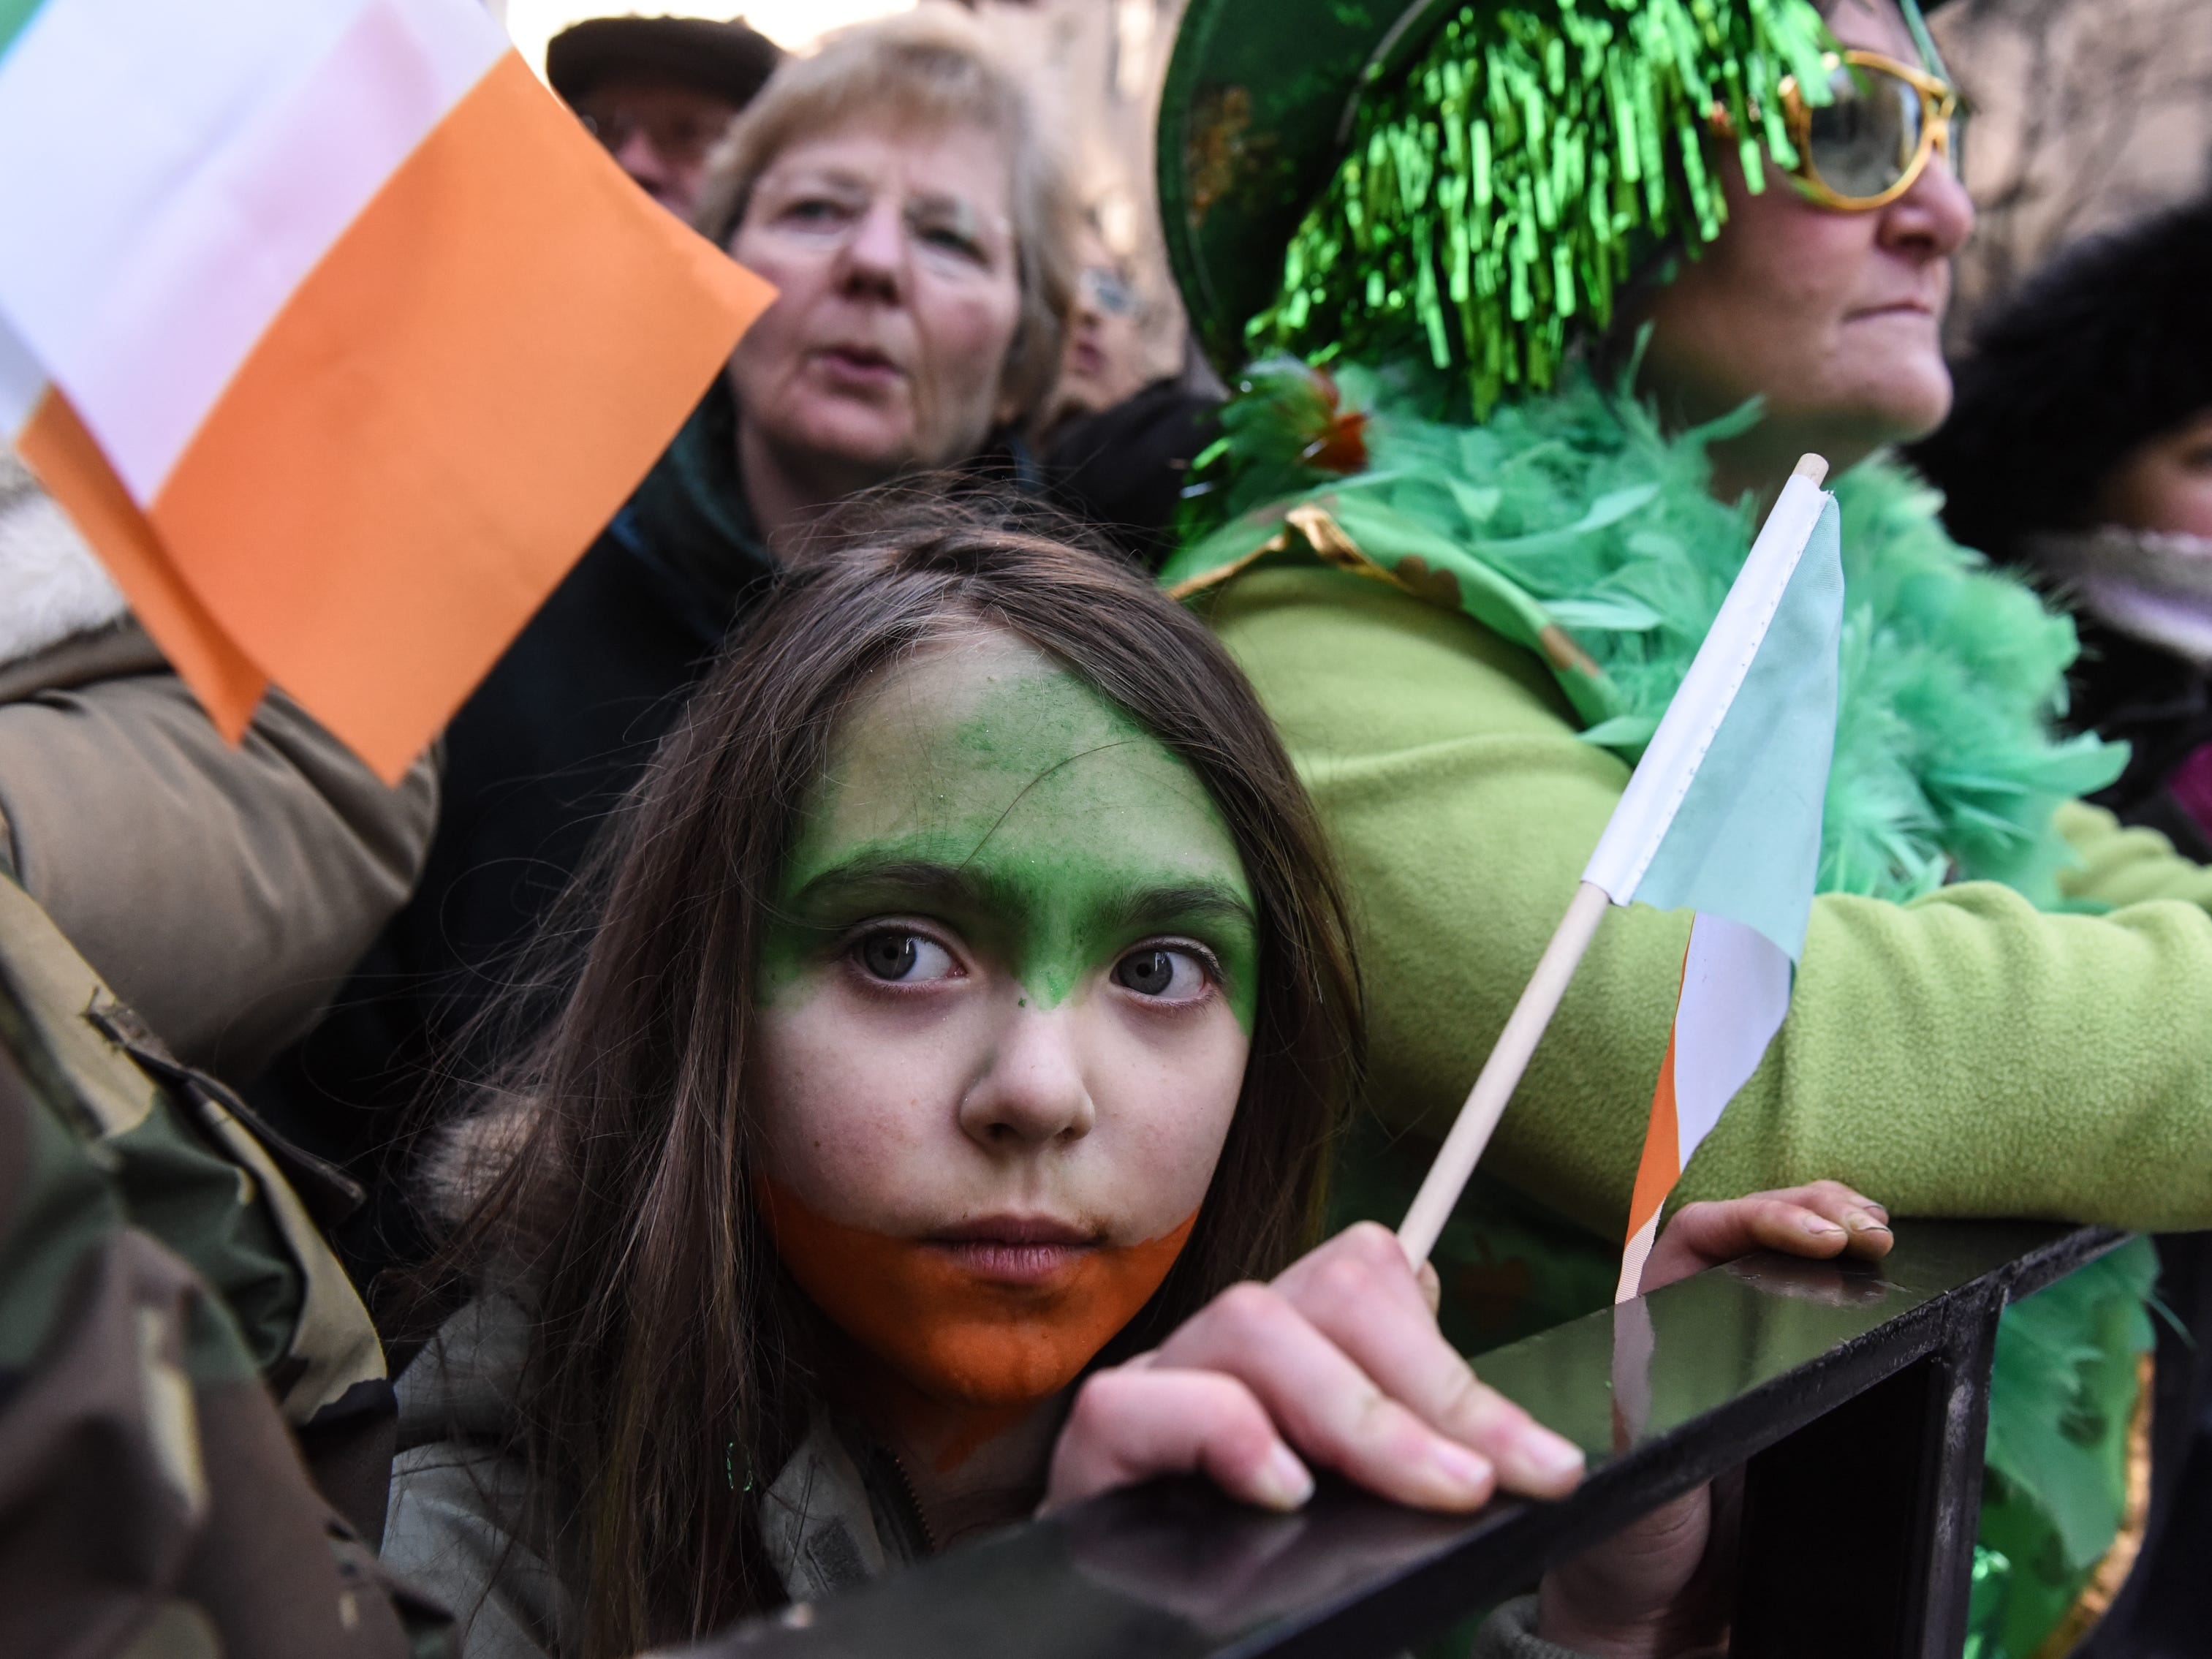 NEW YORK, NY - MARCH 17: People dress in Irish colors along the sidelines of the annual St. Patrick's Day parade along 5th Ave. on March 17, 2018 in New York City. New York's Saint Patrick's Day parade is the largest in the world. (Photo by Stephanie Keith/Getty Images) ORG XMIT: 775141848 ORIG FILE ID: 933083936